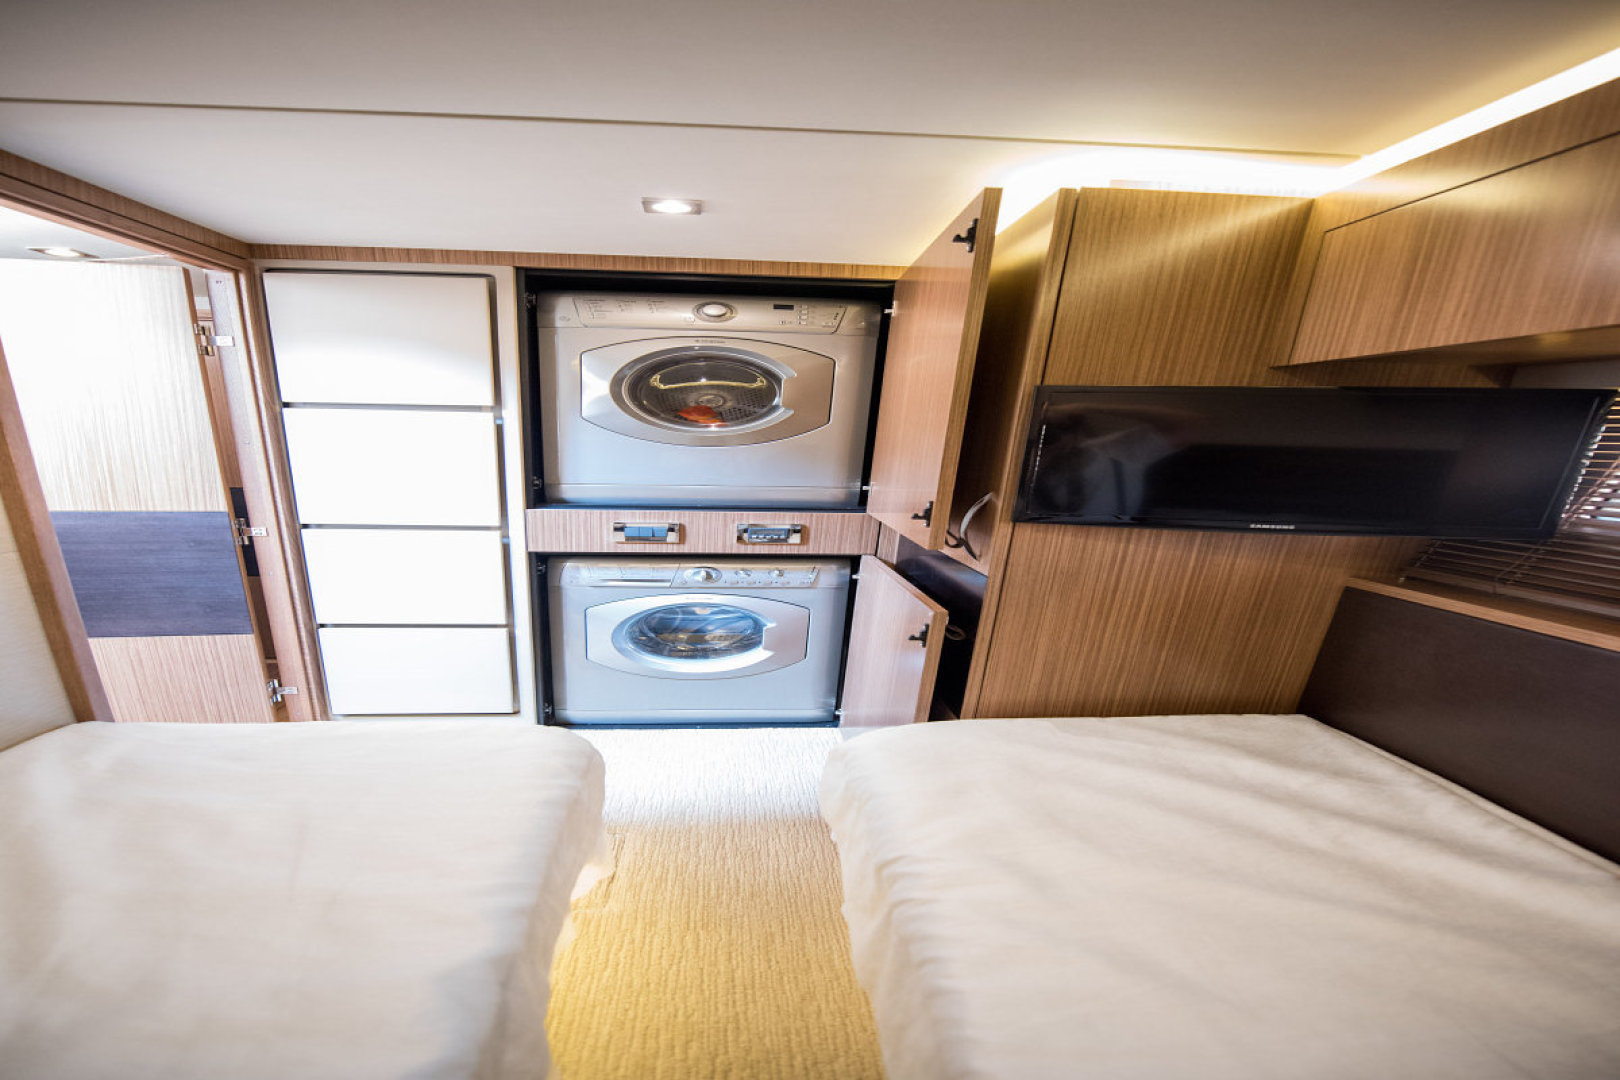 Sea Ray-L590 Fly 2016-2016 Sea Ray L590 Fly Ft. Lauderdale-Florida-United States-1284642 | Thumbnail